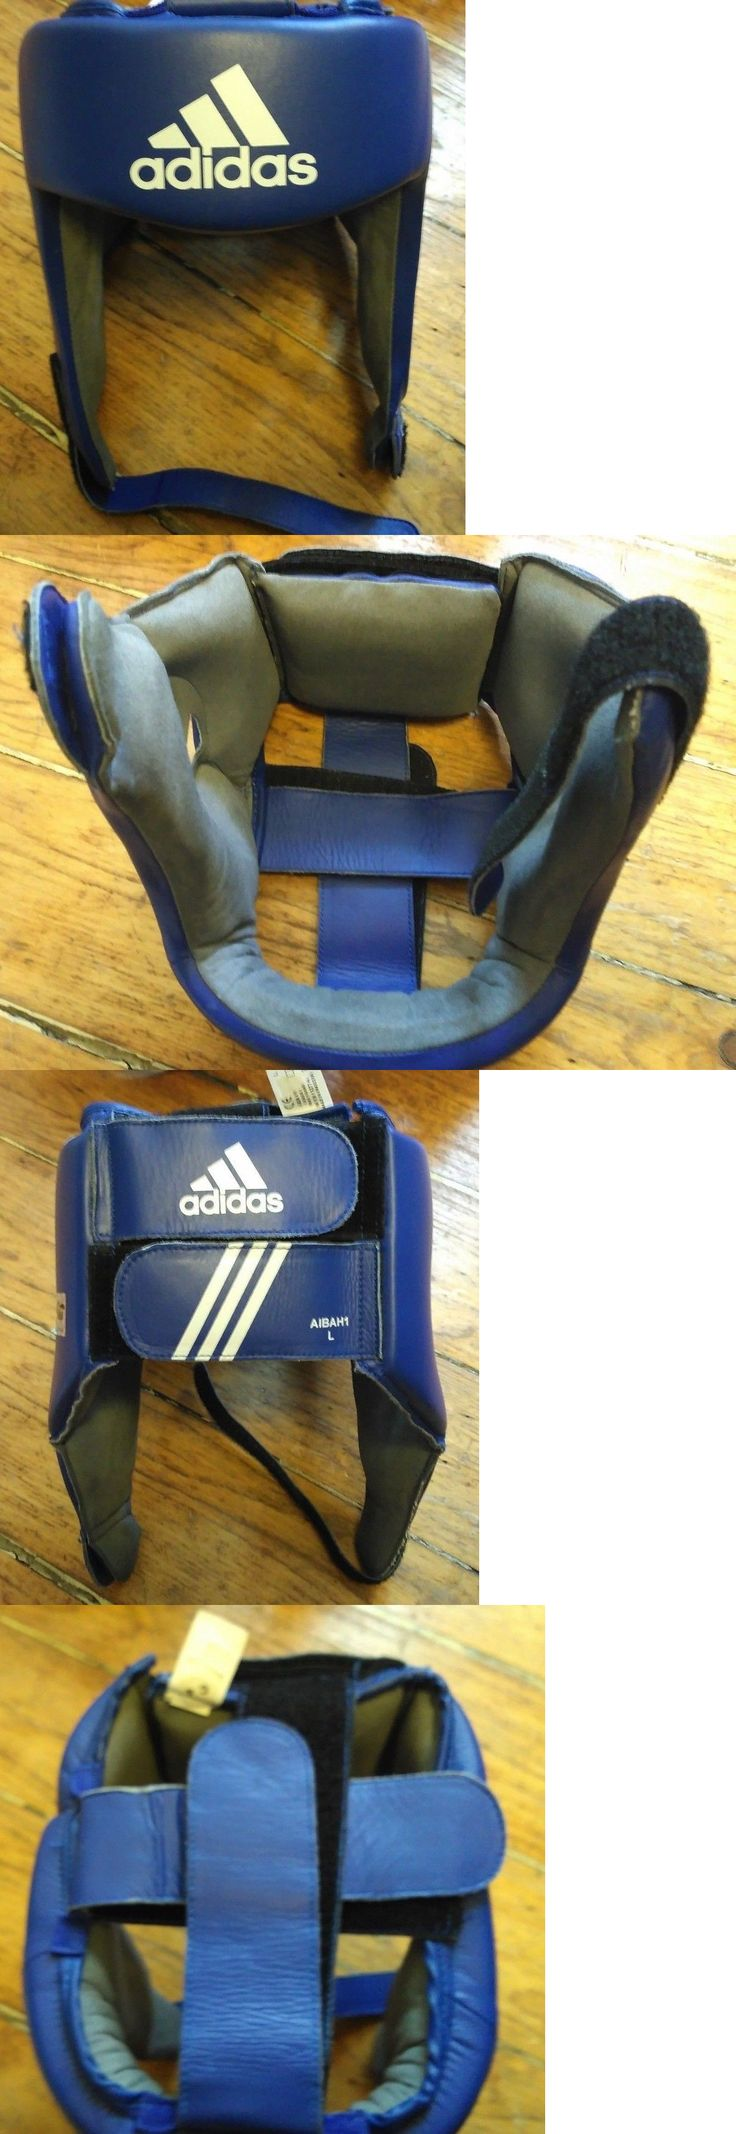 Head Gear 179780: Adidas Aiba Official Olympic Boxing Competition Headgear Large -> BUY IT NOW ONLY: $50 on eBay!